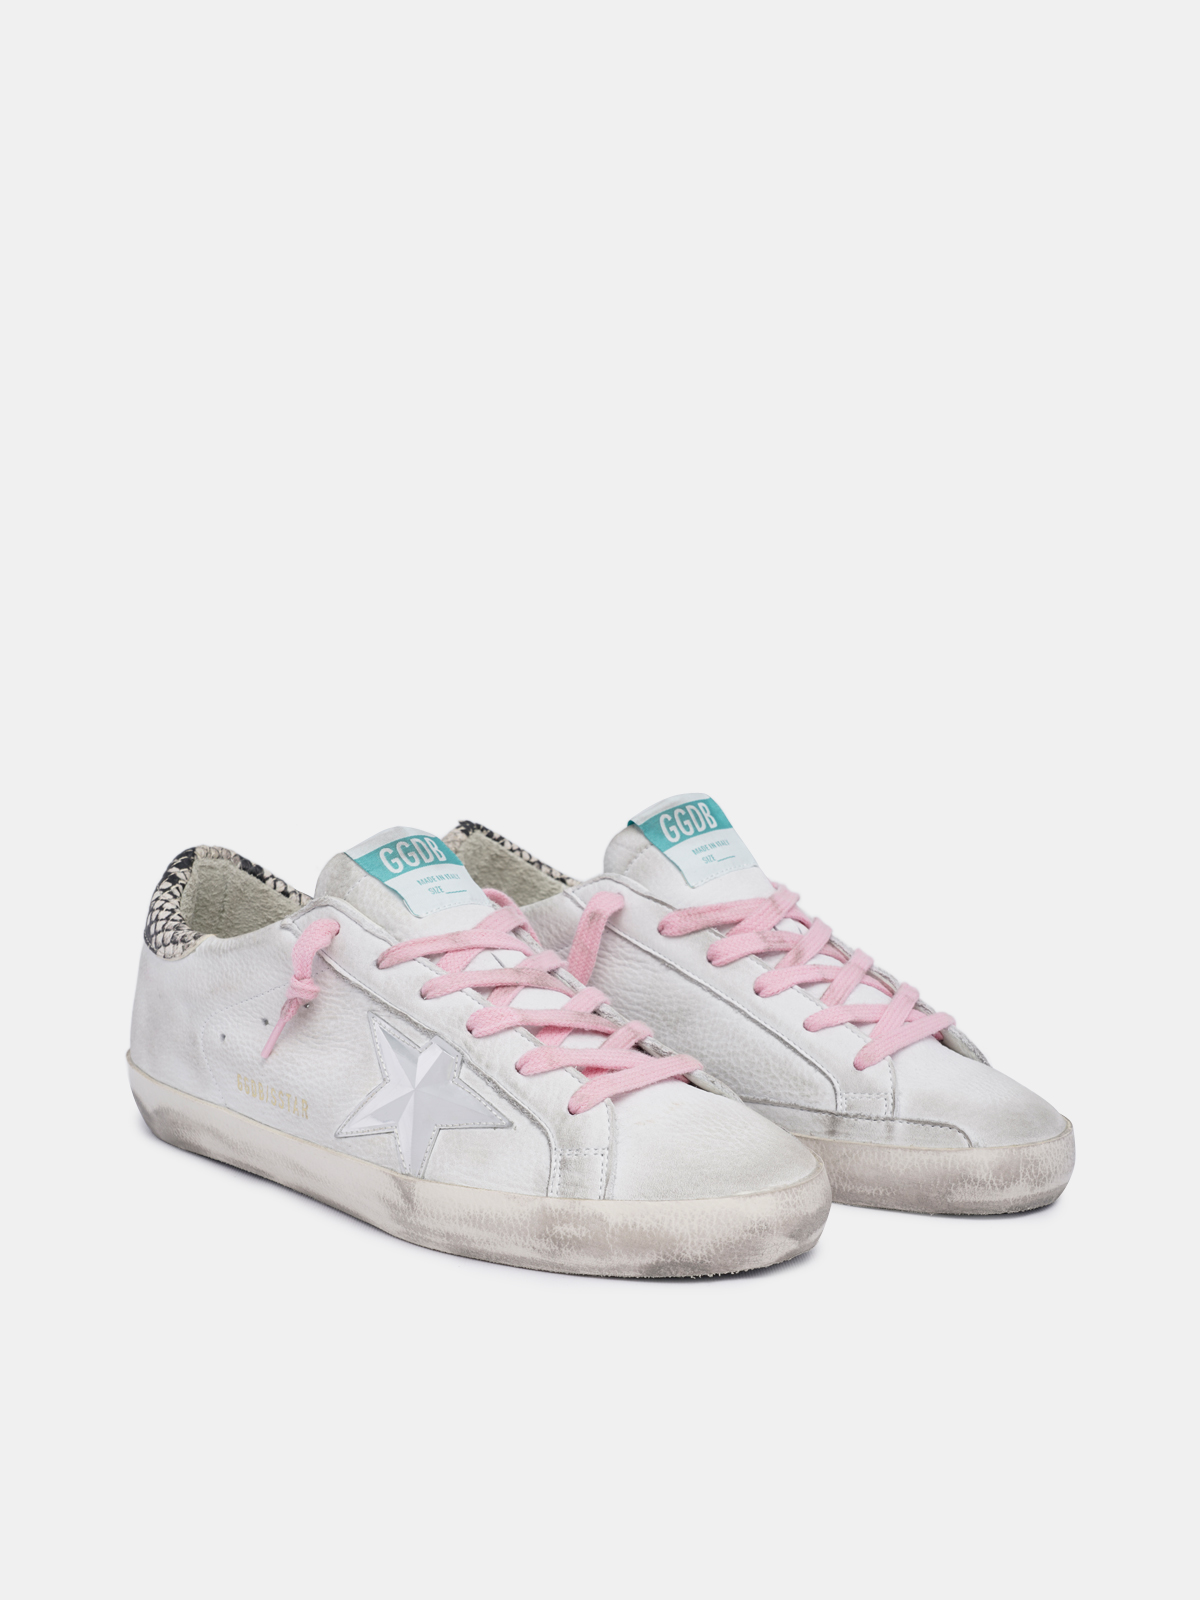 Golden Goose - White Super-Star sneakers with snake-print heel tab in